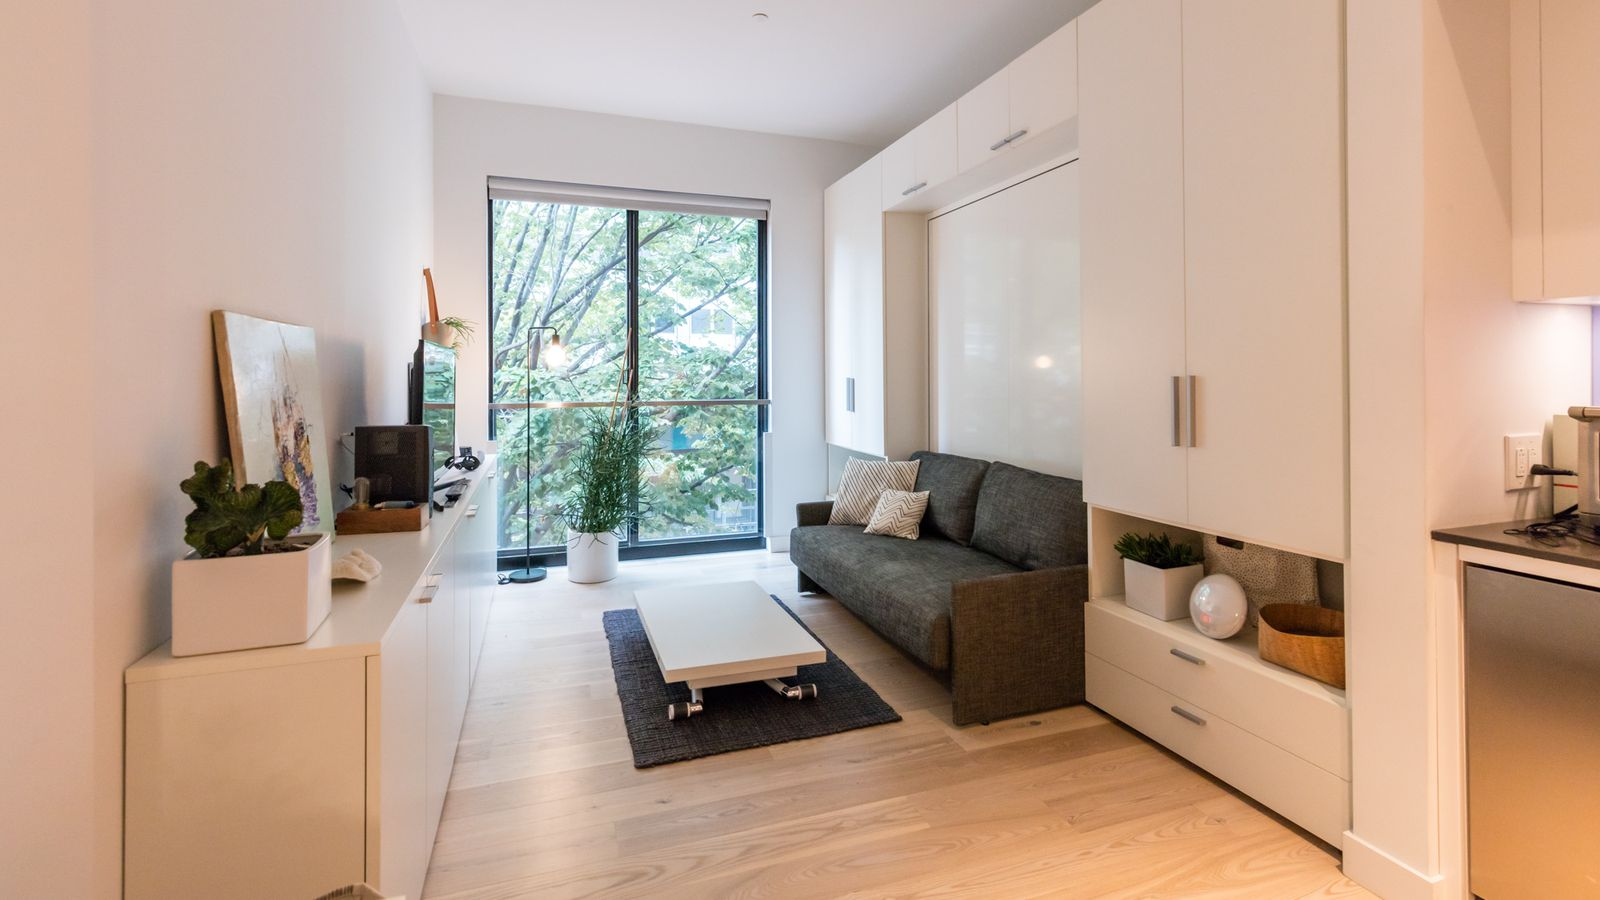 Micro Studio Apartments Is There A Future For Micro Housing In New York City